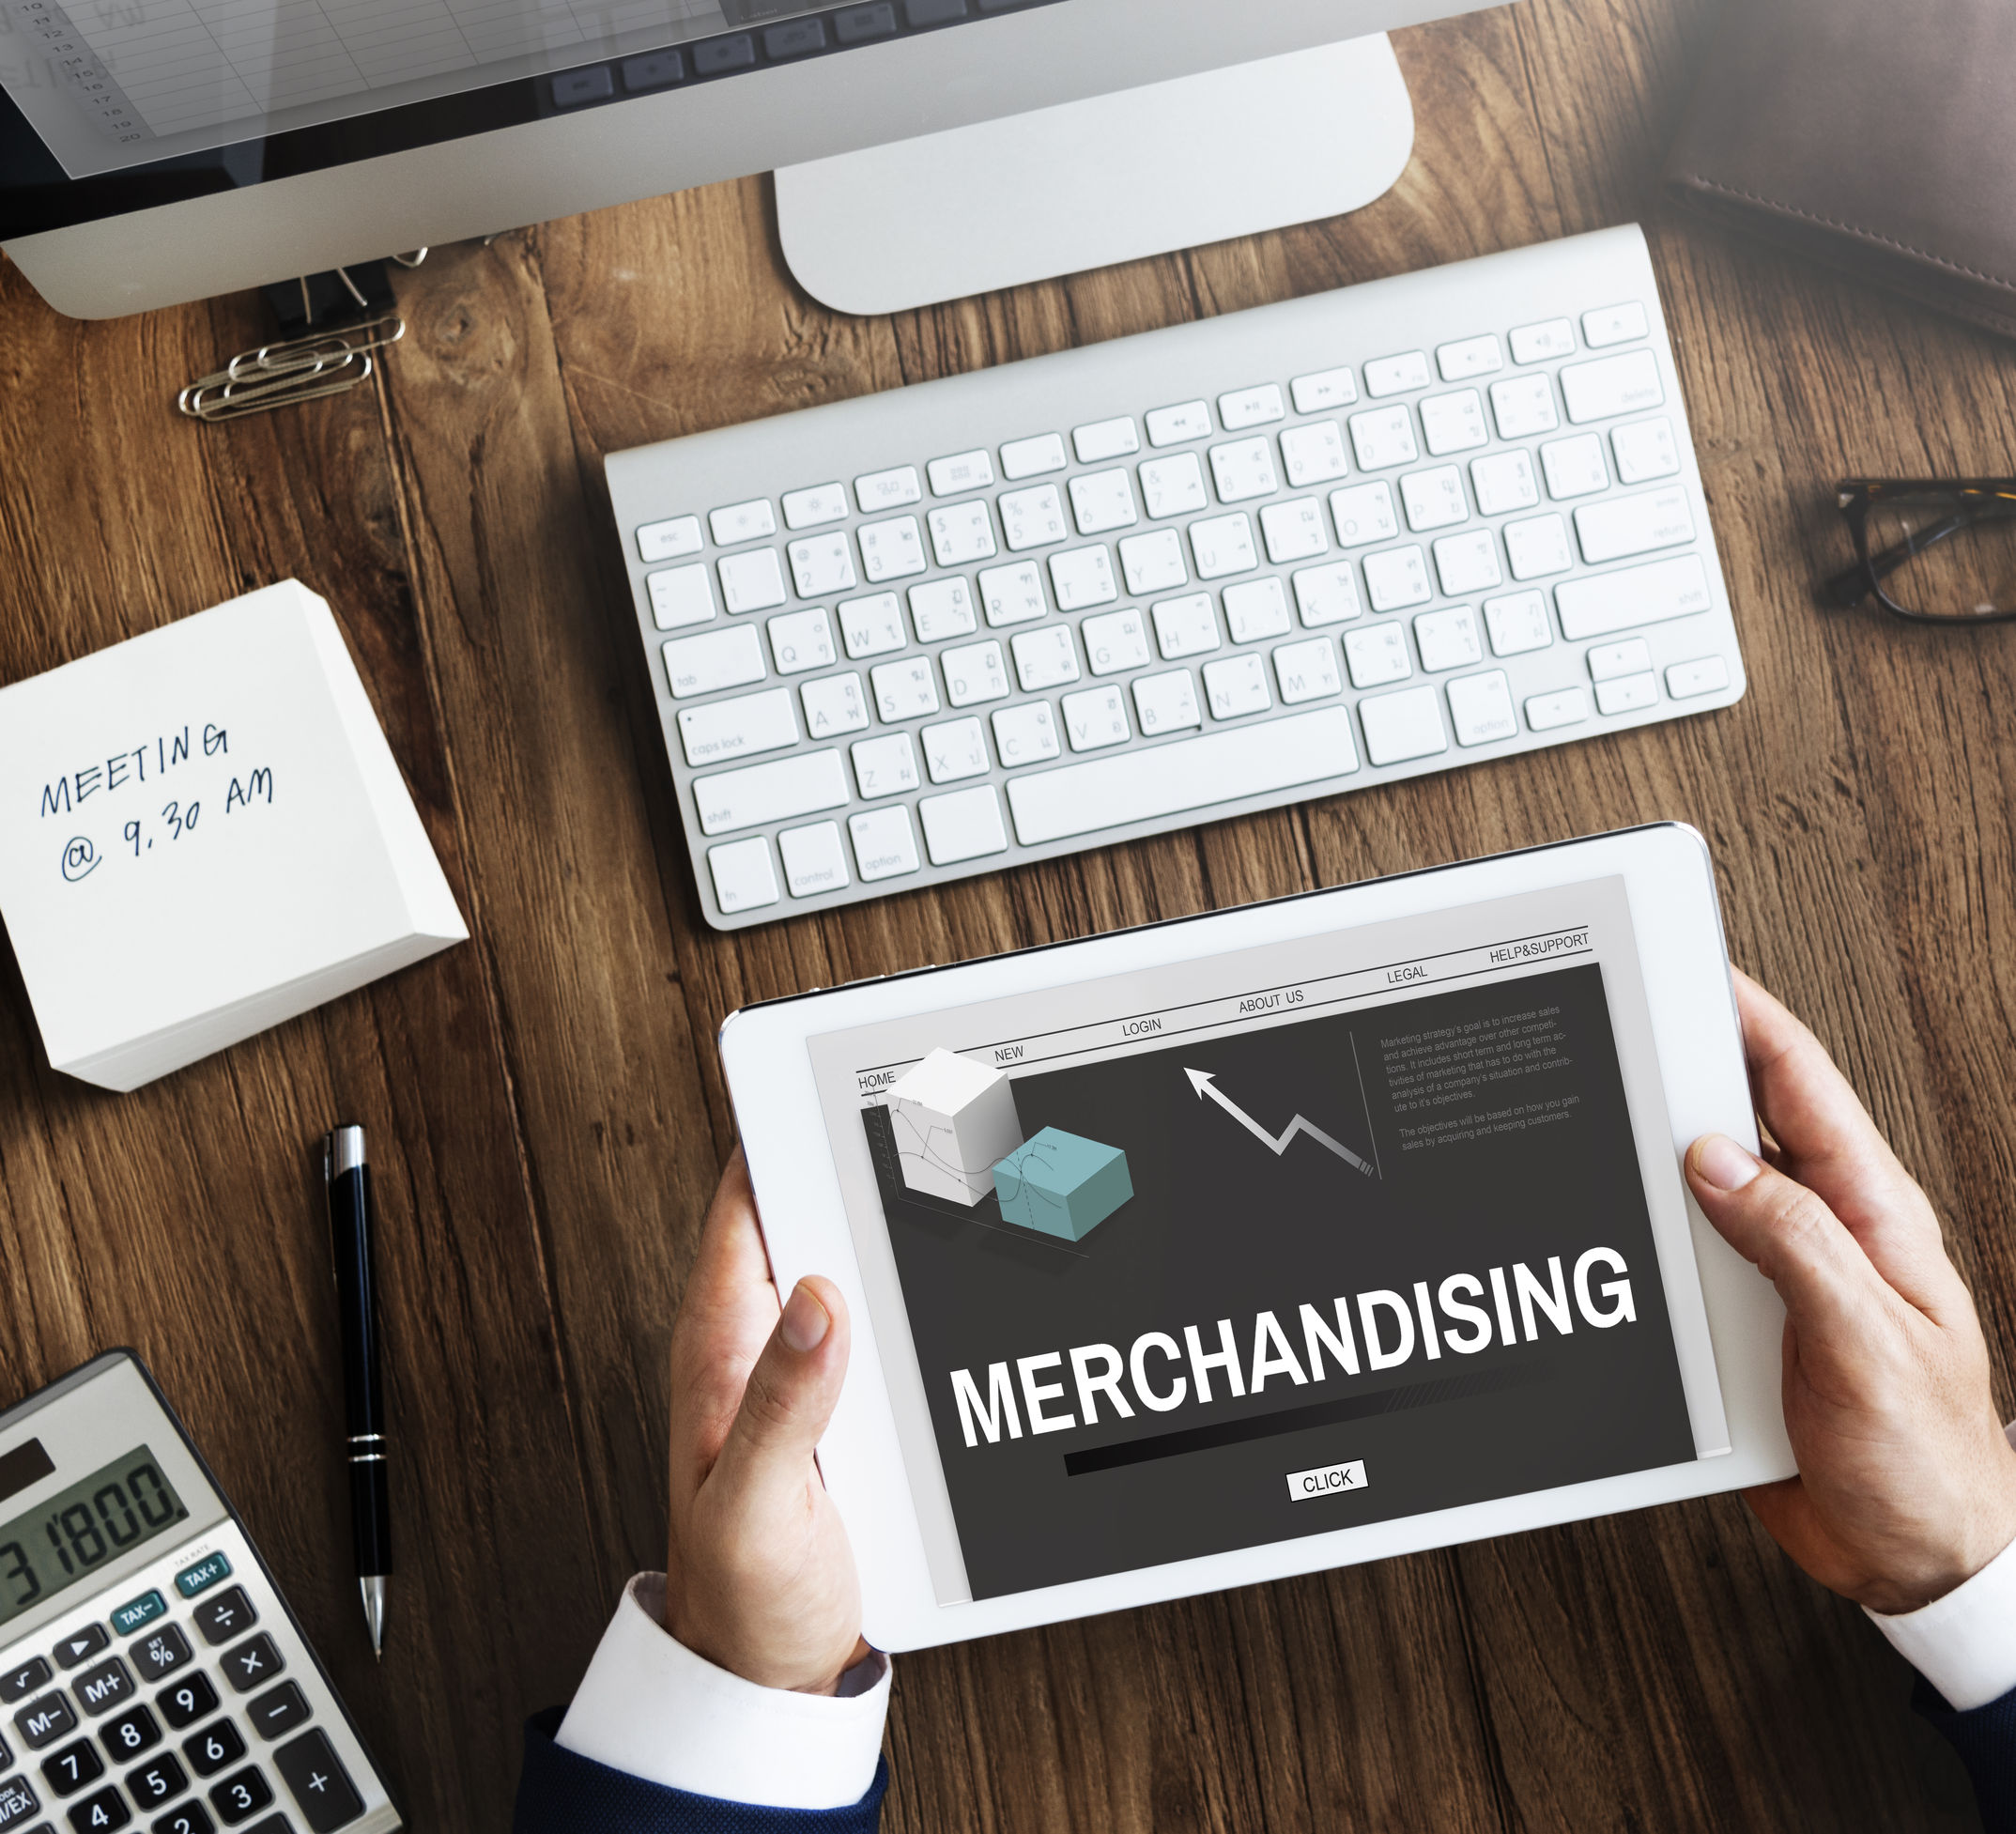 5 Tips to Merchandise Effectively and Win the Digital Customer